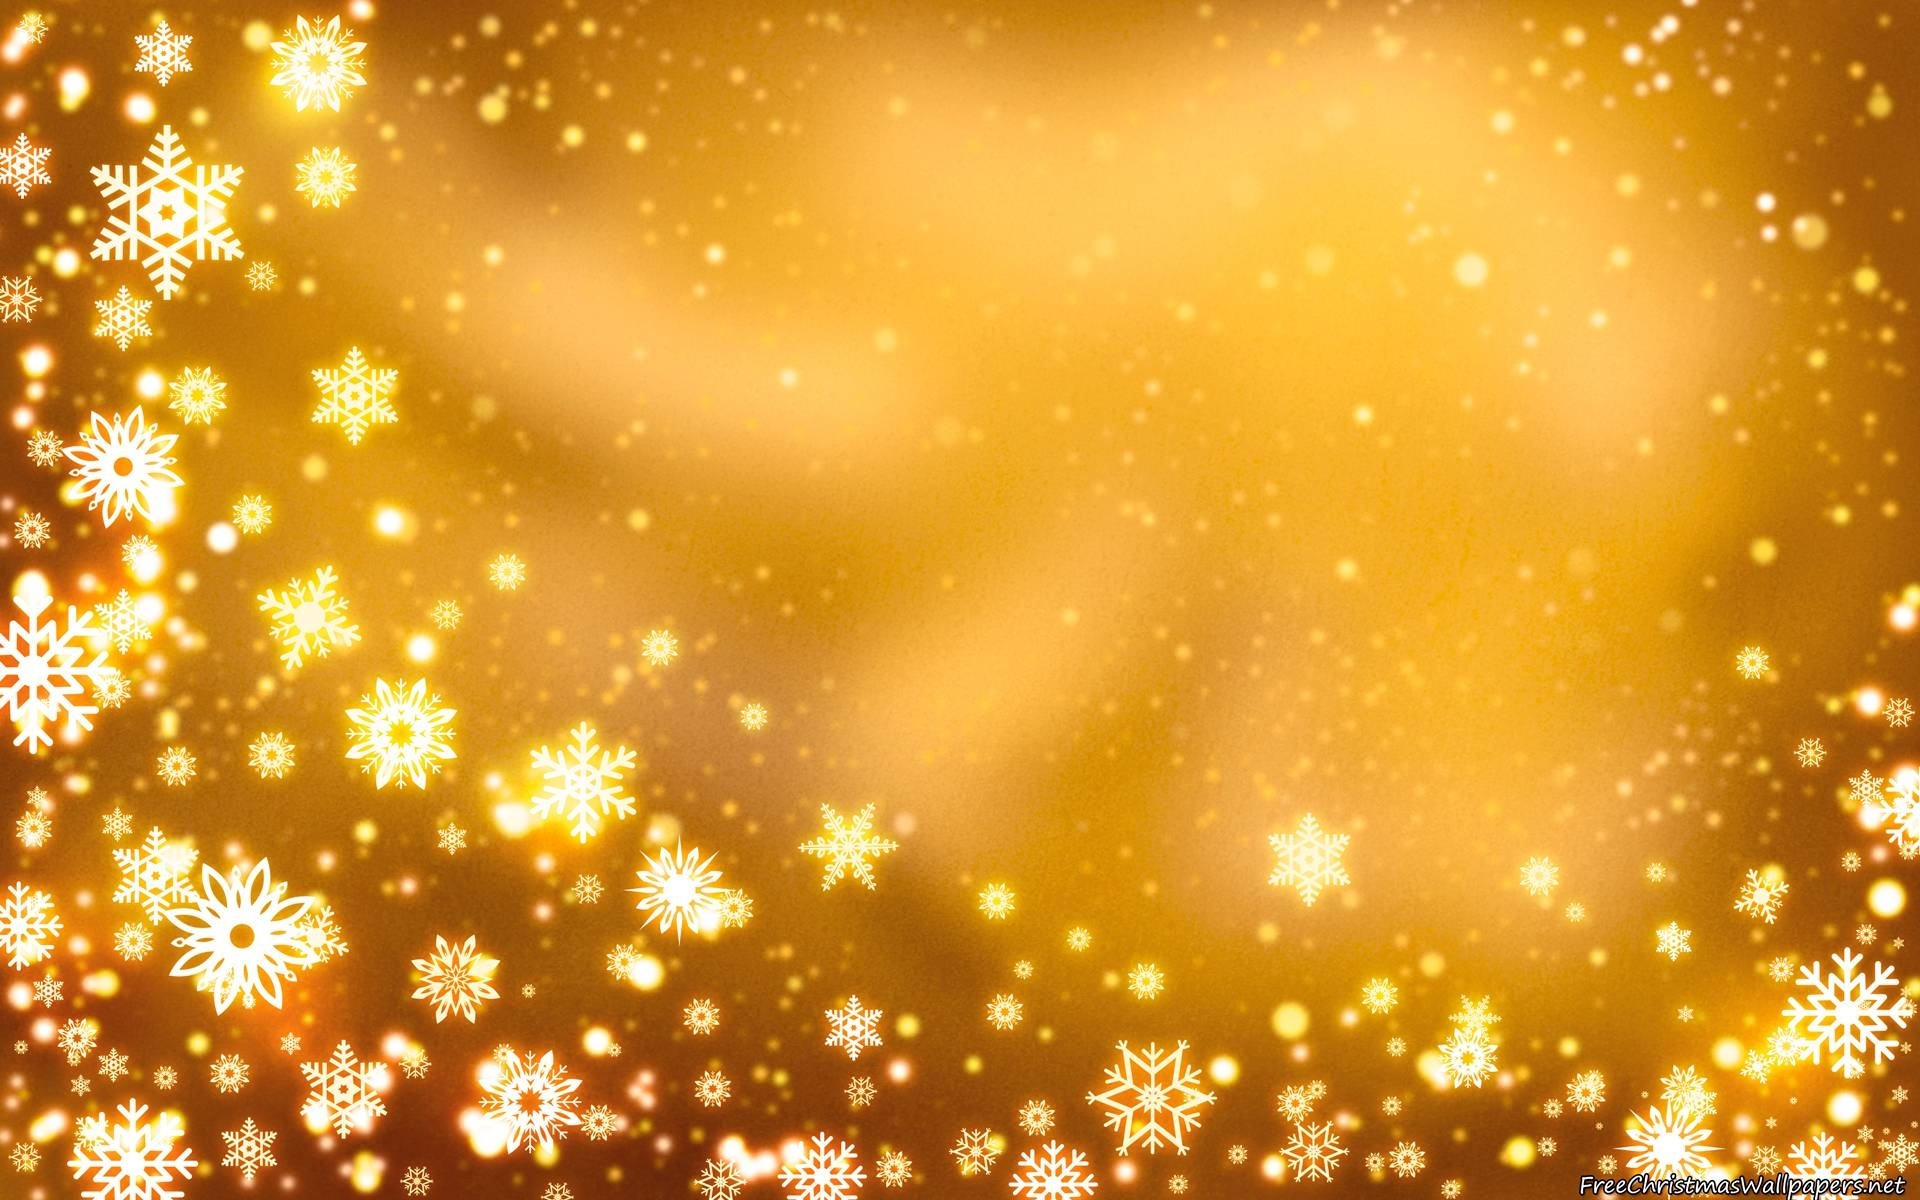 yellow christmas background with snowflakes wallpaper | christmas